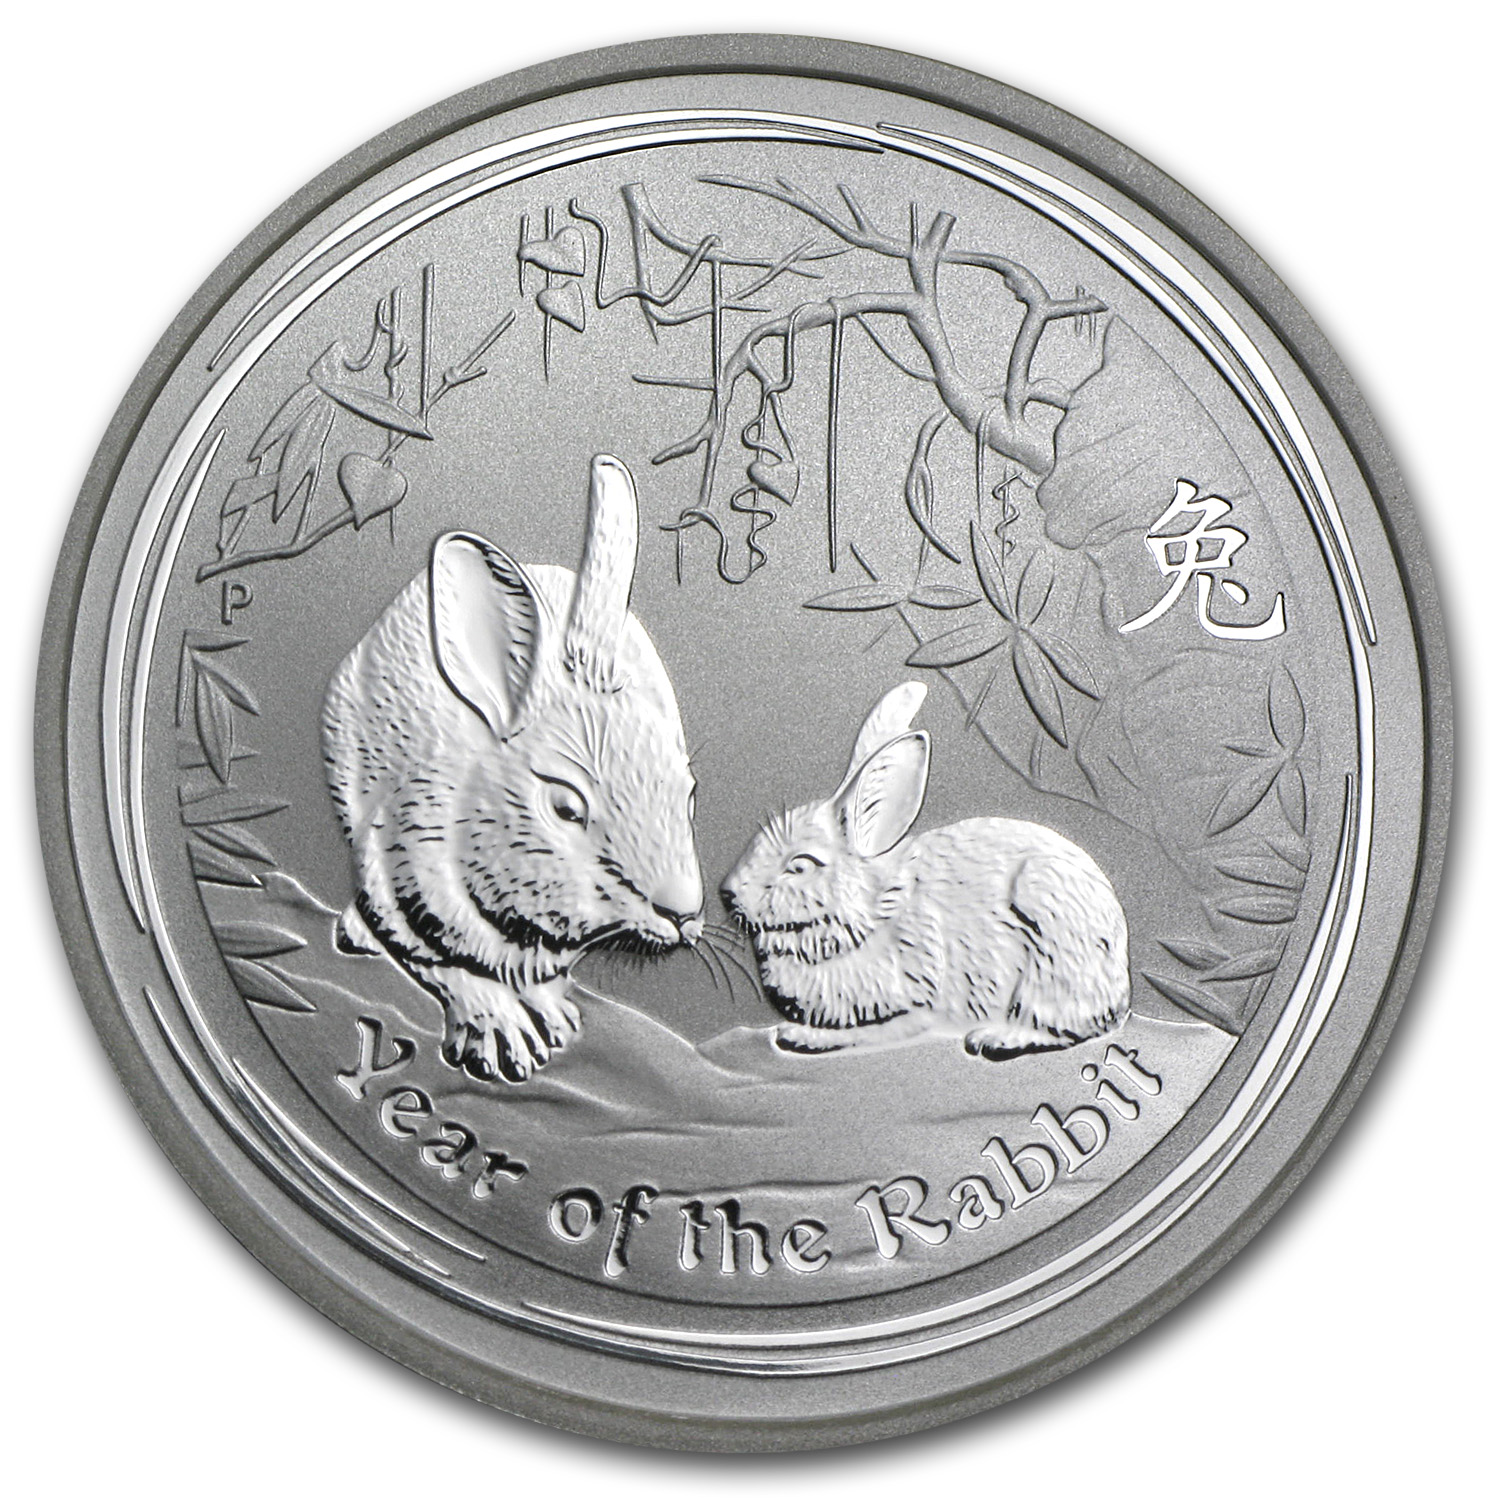 2011 Australia 1/2 oz Silver Year of the Rabbit BU